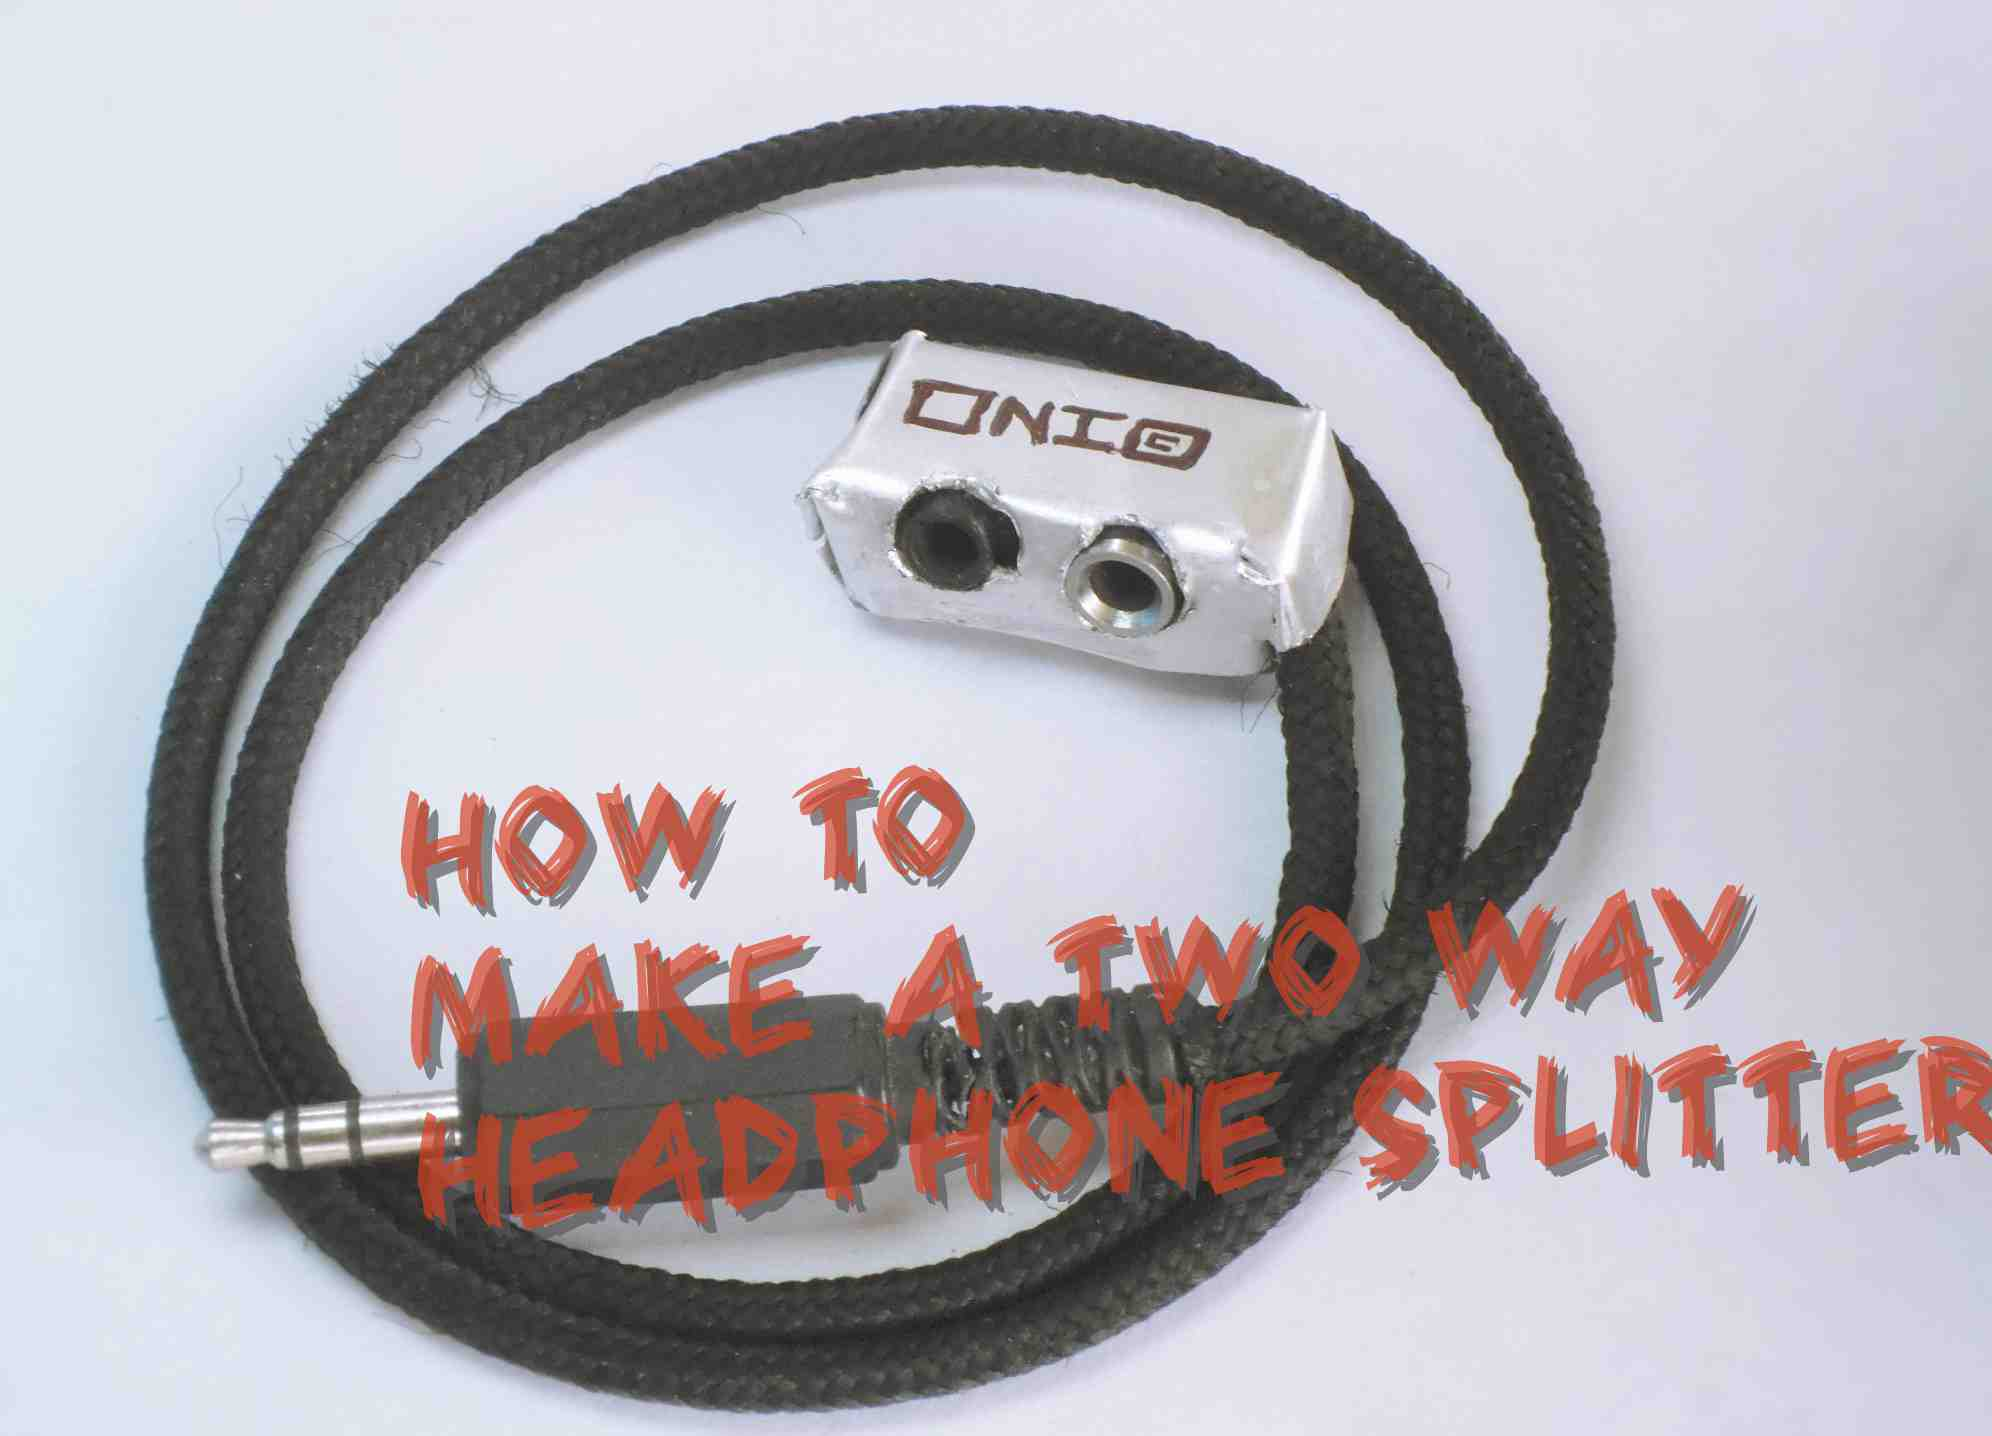 How to make a two way headphone splliter!